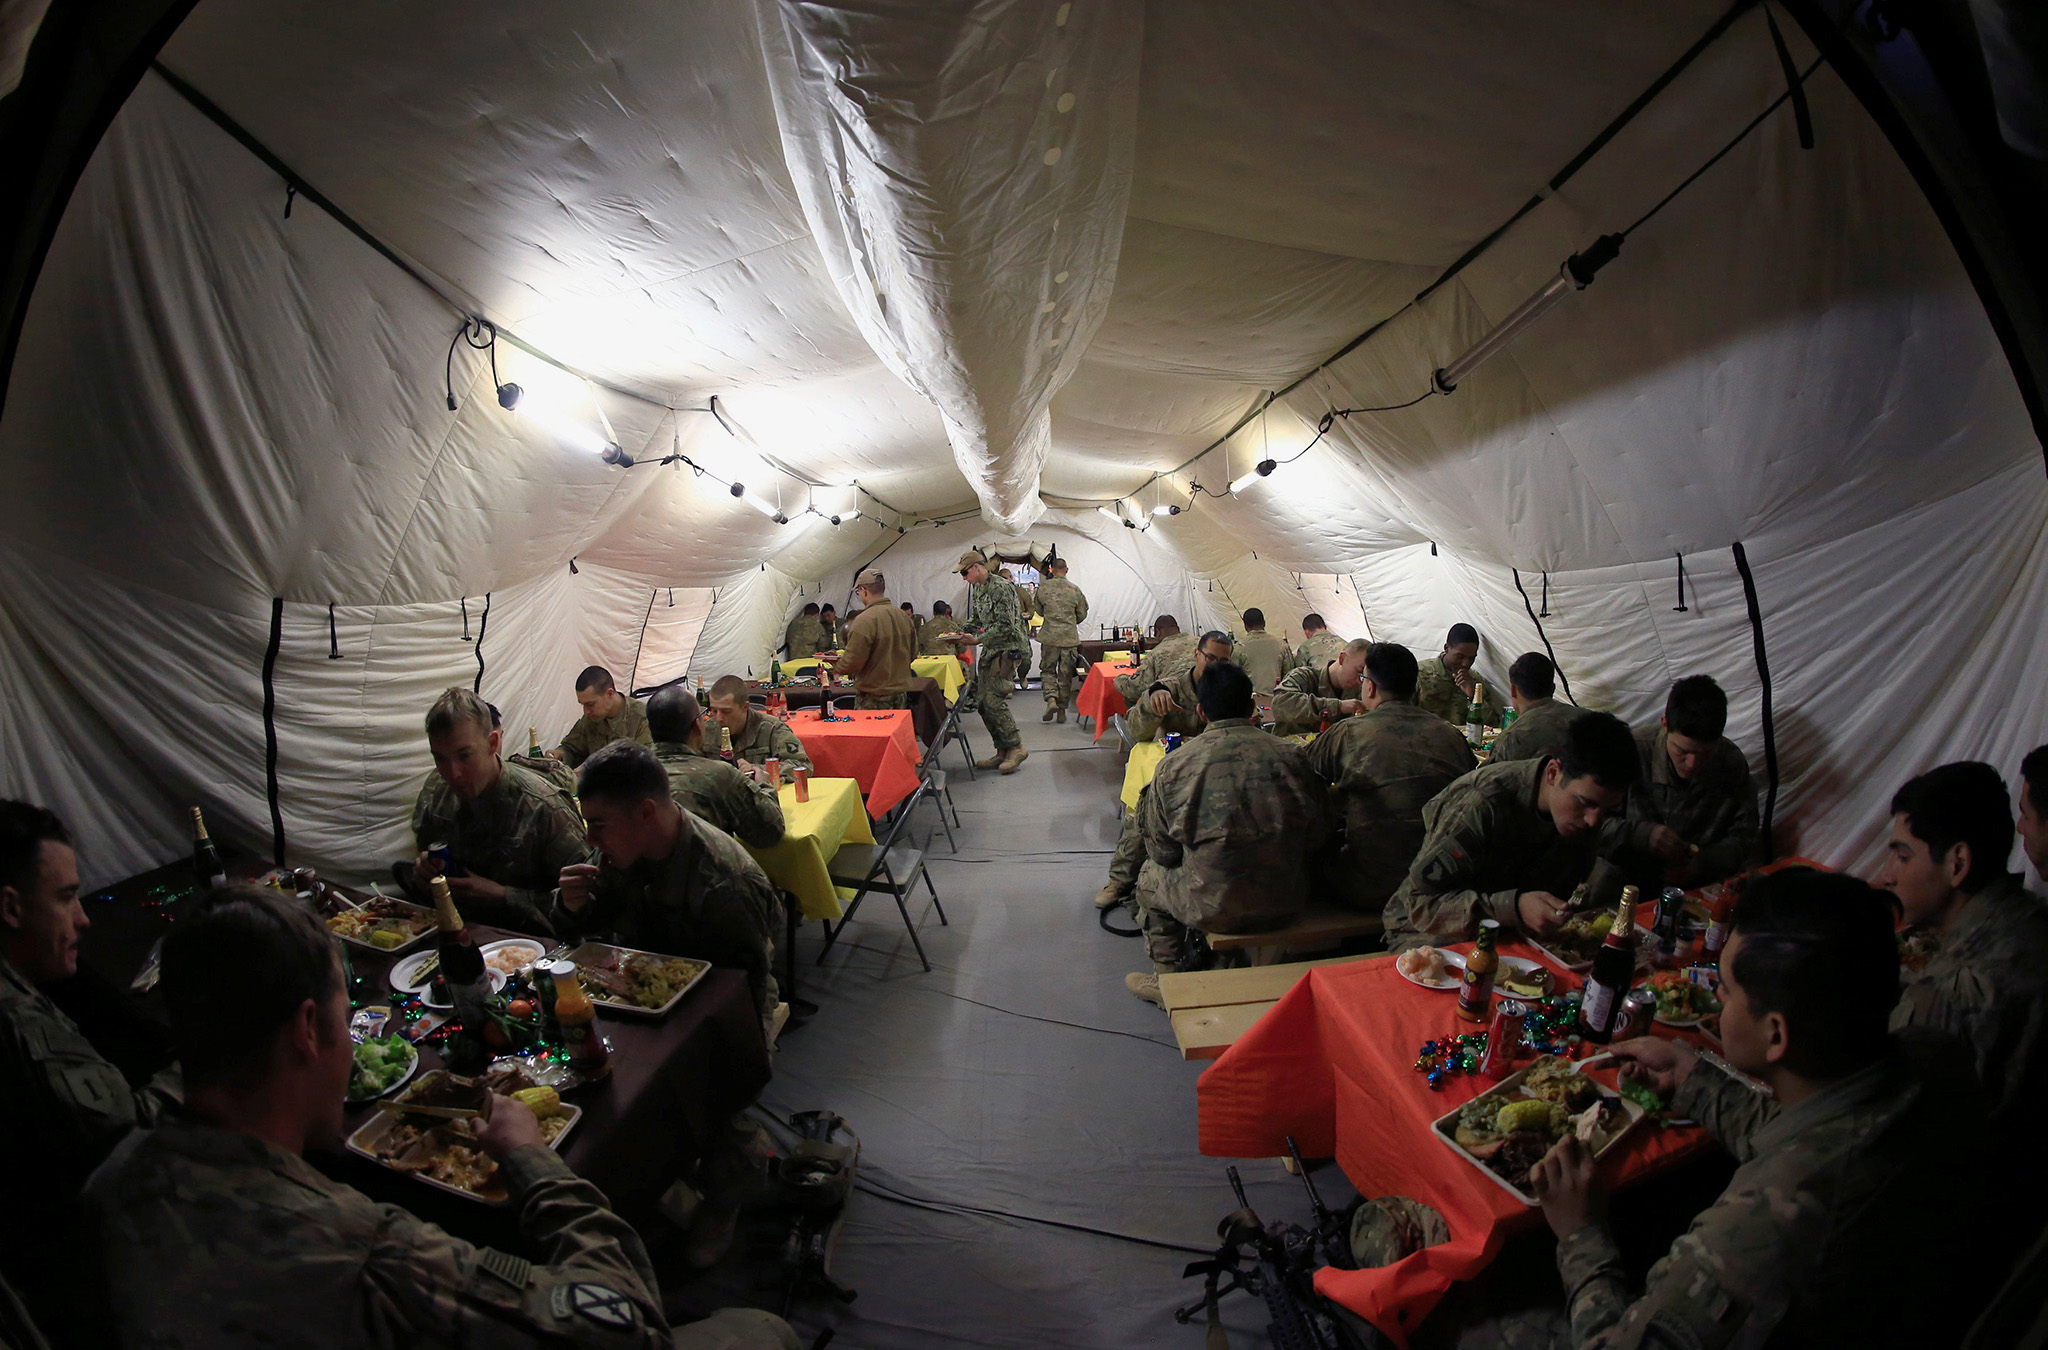 U.S. soldiers eat their meals to celebrate Thanksgiving Day inside the U.S. army base in Qayyara, south of Mosul, Iraq November 24, 2016.